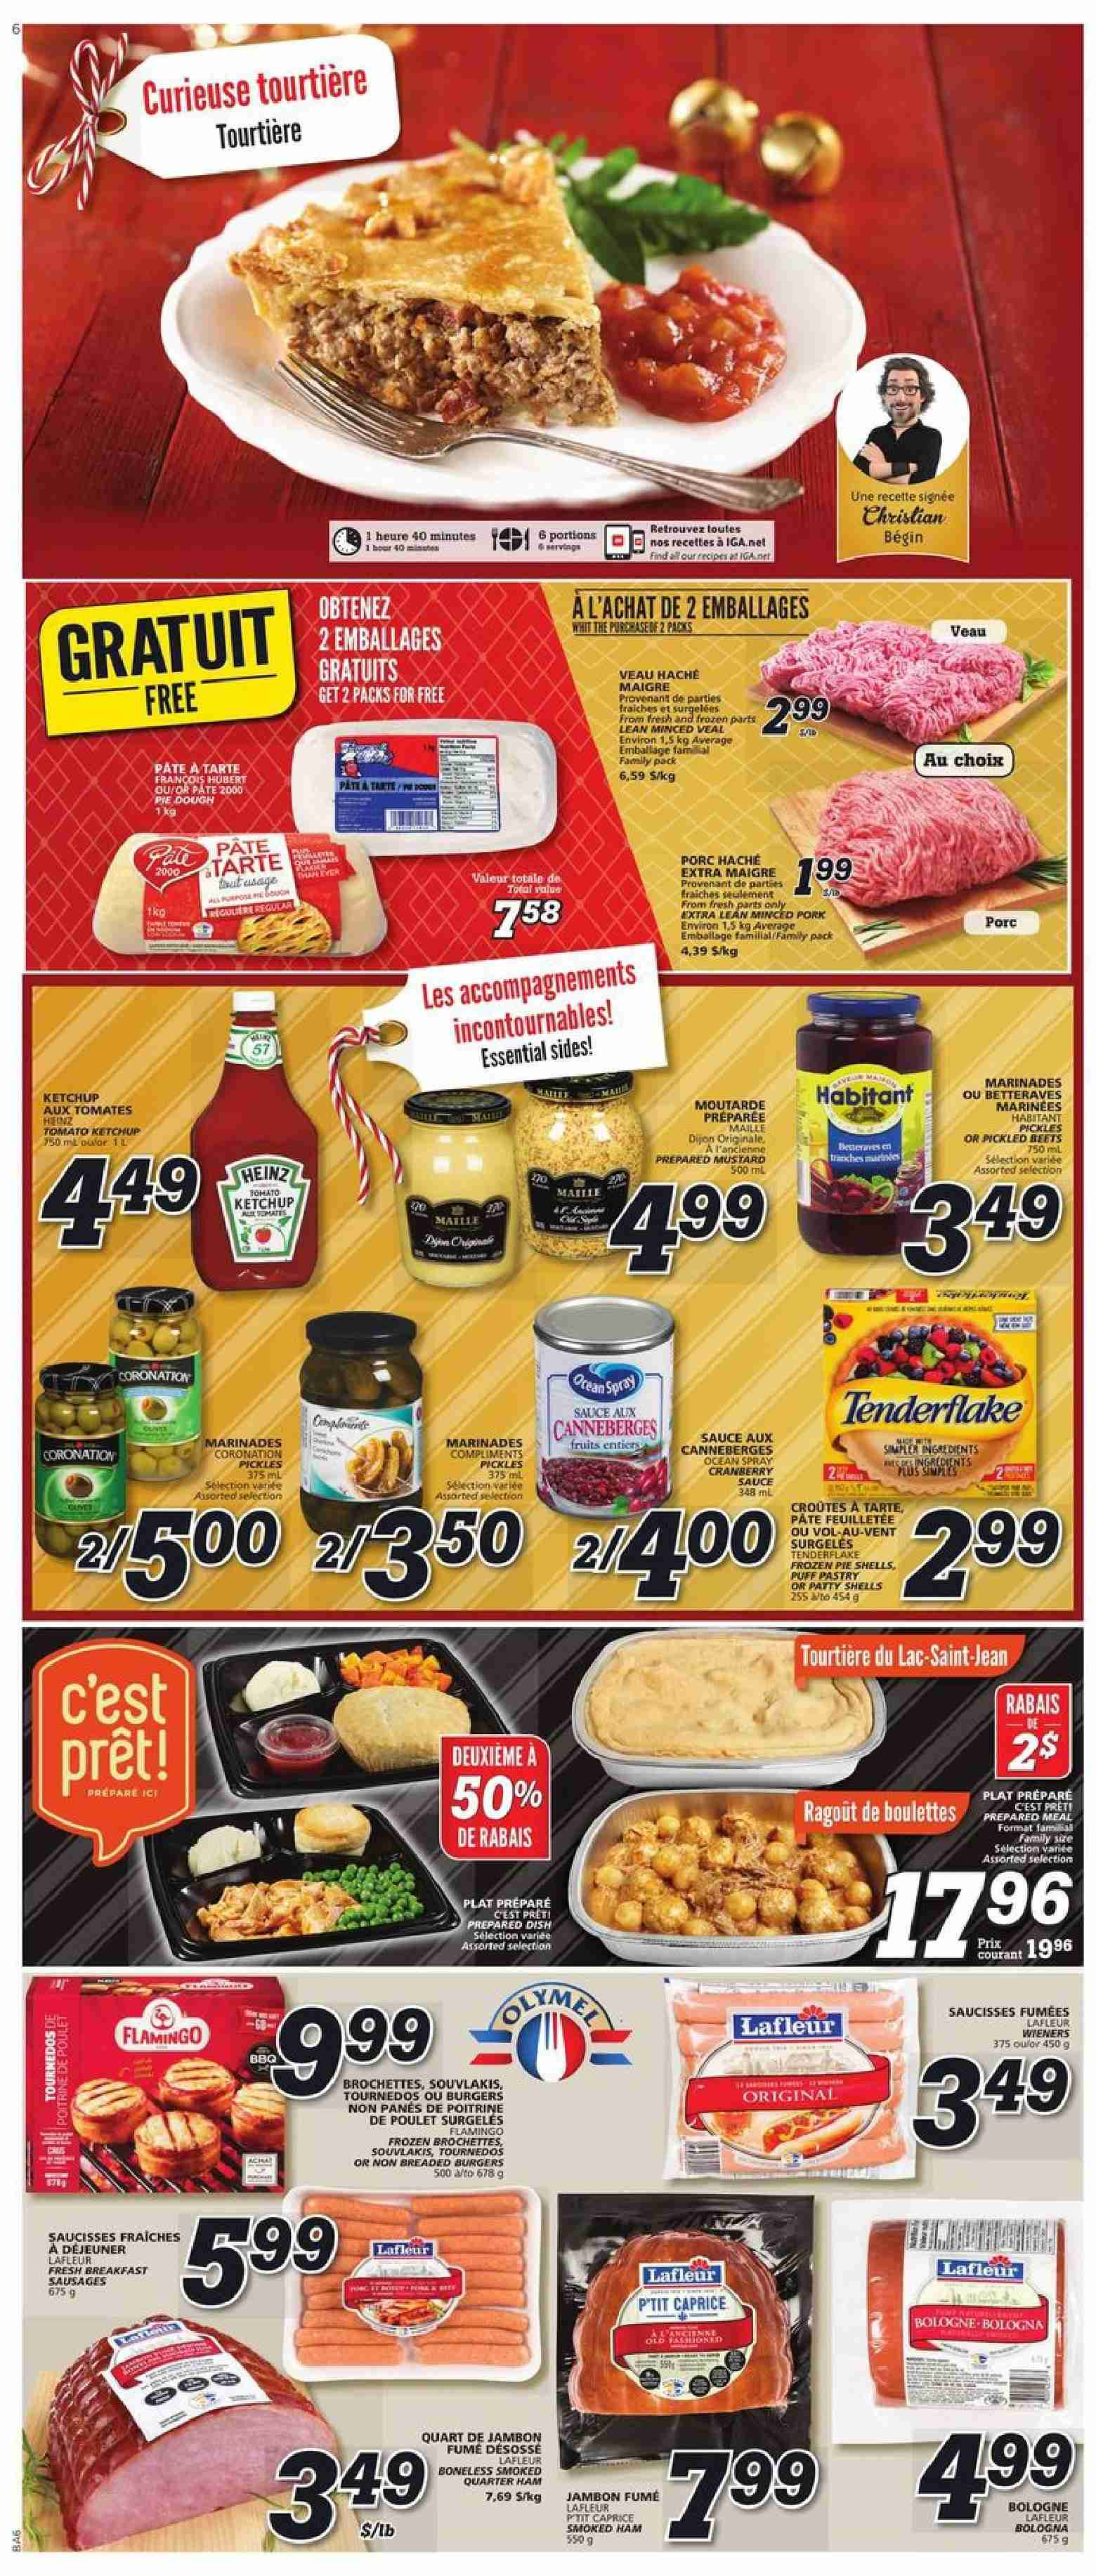 IGA Flyer - November 29, 2018 - December 05, 2018 - Sales products - flamingo, frozen, mustard, sausages, veal meat, ham, ketchup, pickles, puff pastry, pie, sauce, tomates, poulet, porc, veau, jambon, tarte, canneberge, total, saucisse, maille, pâtes, fruits, family pack. Page 4.